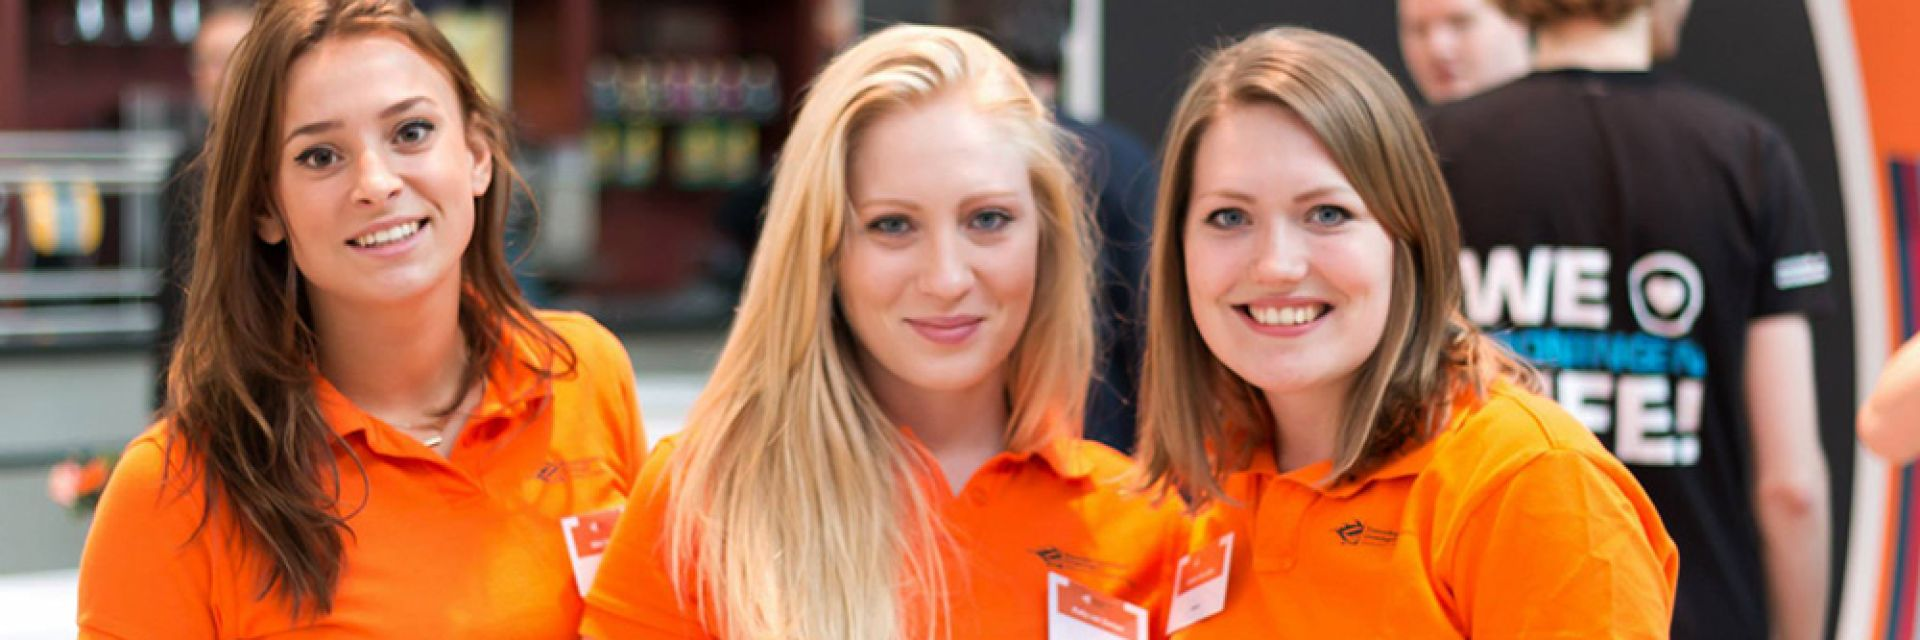 Open Day Hanze University